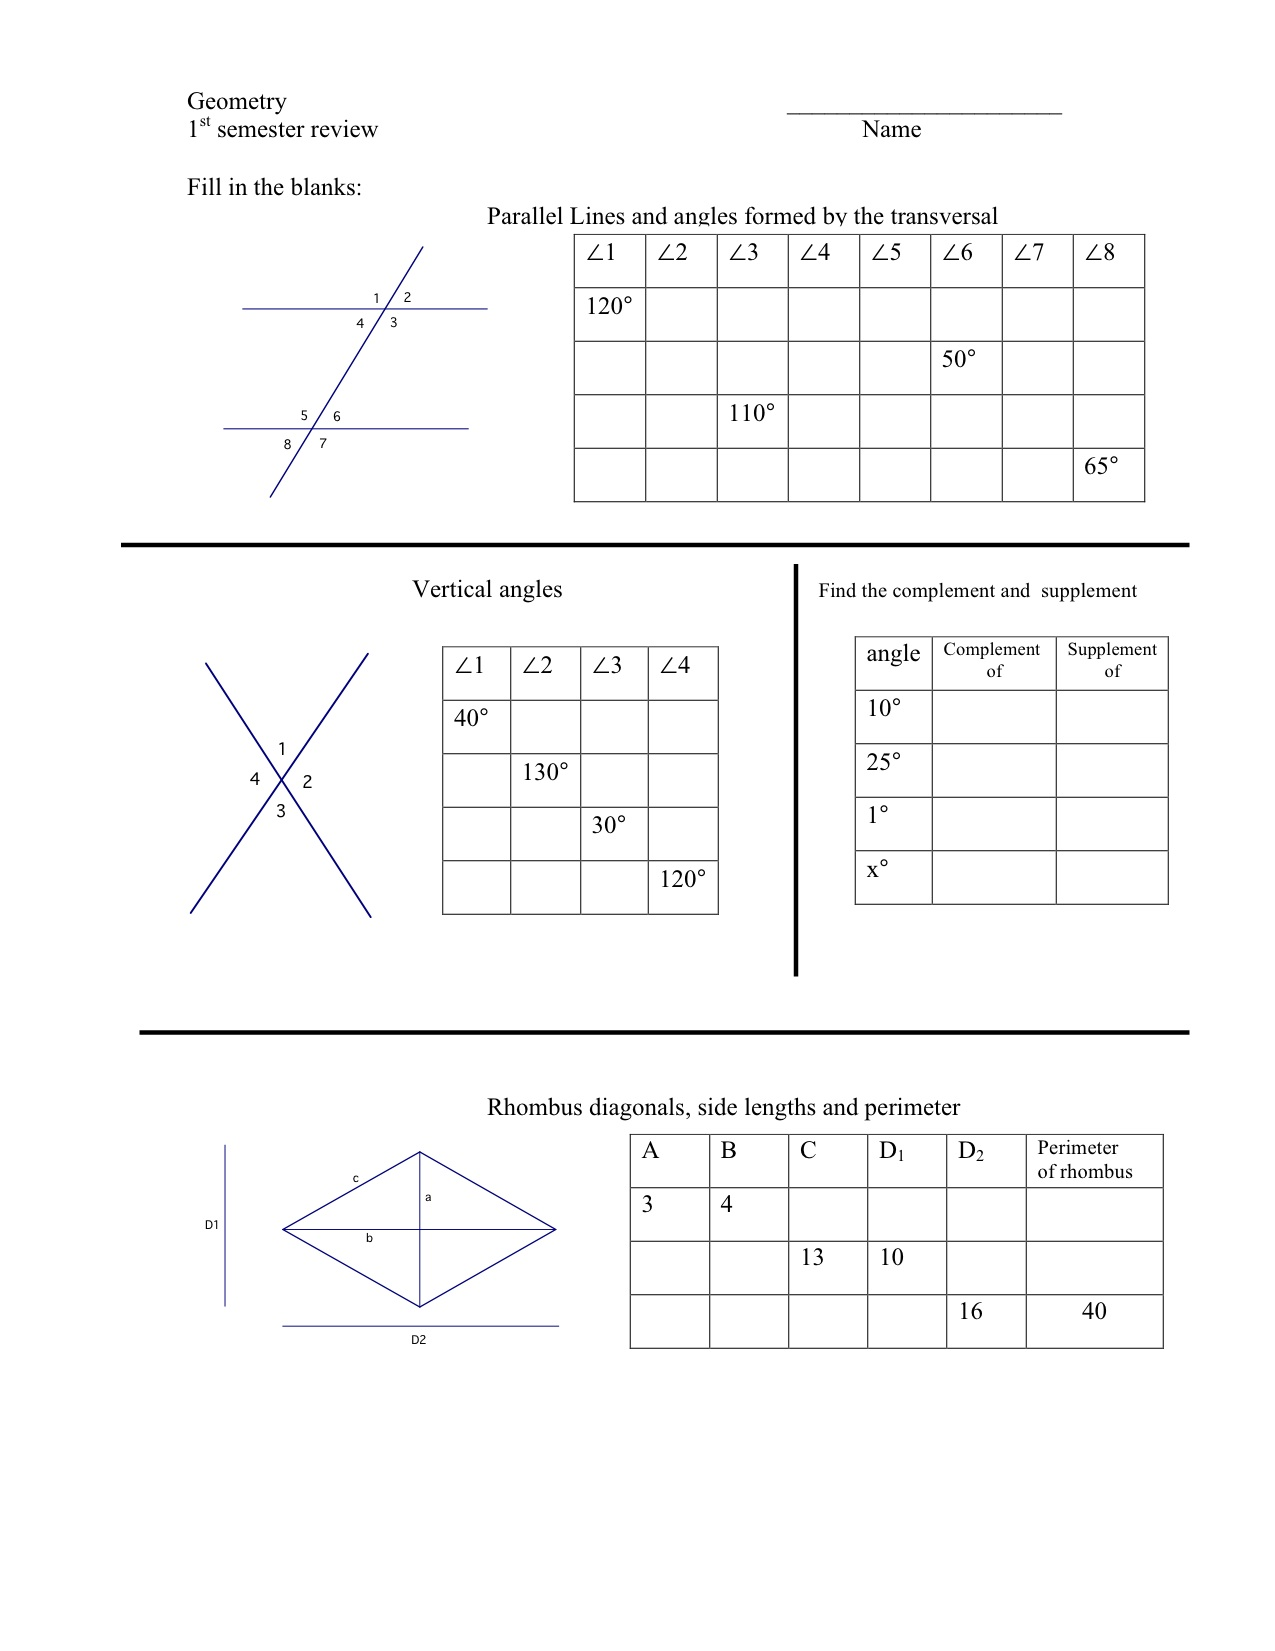 Geometry First Semester Review Worksheet